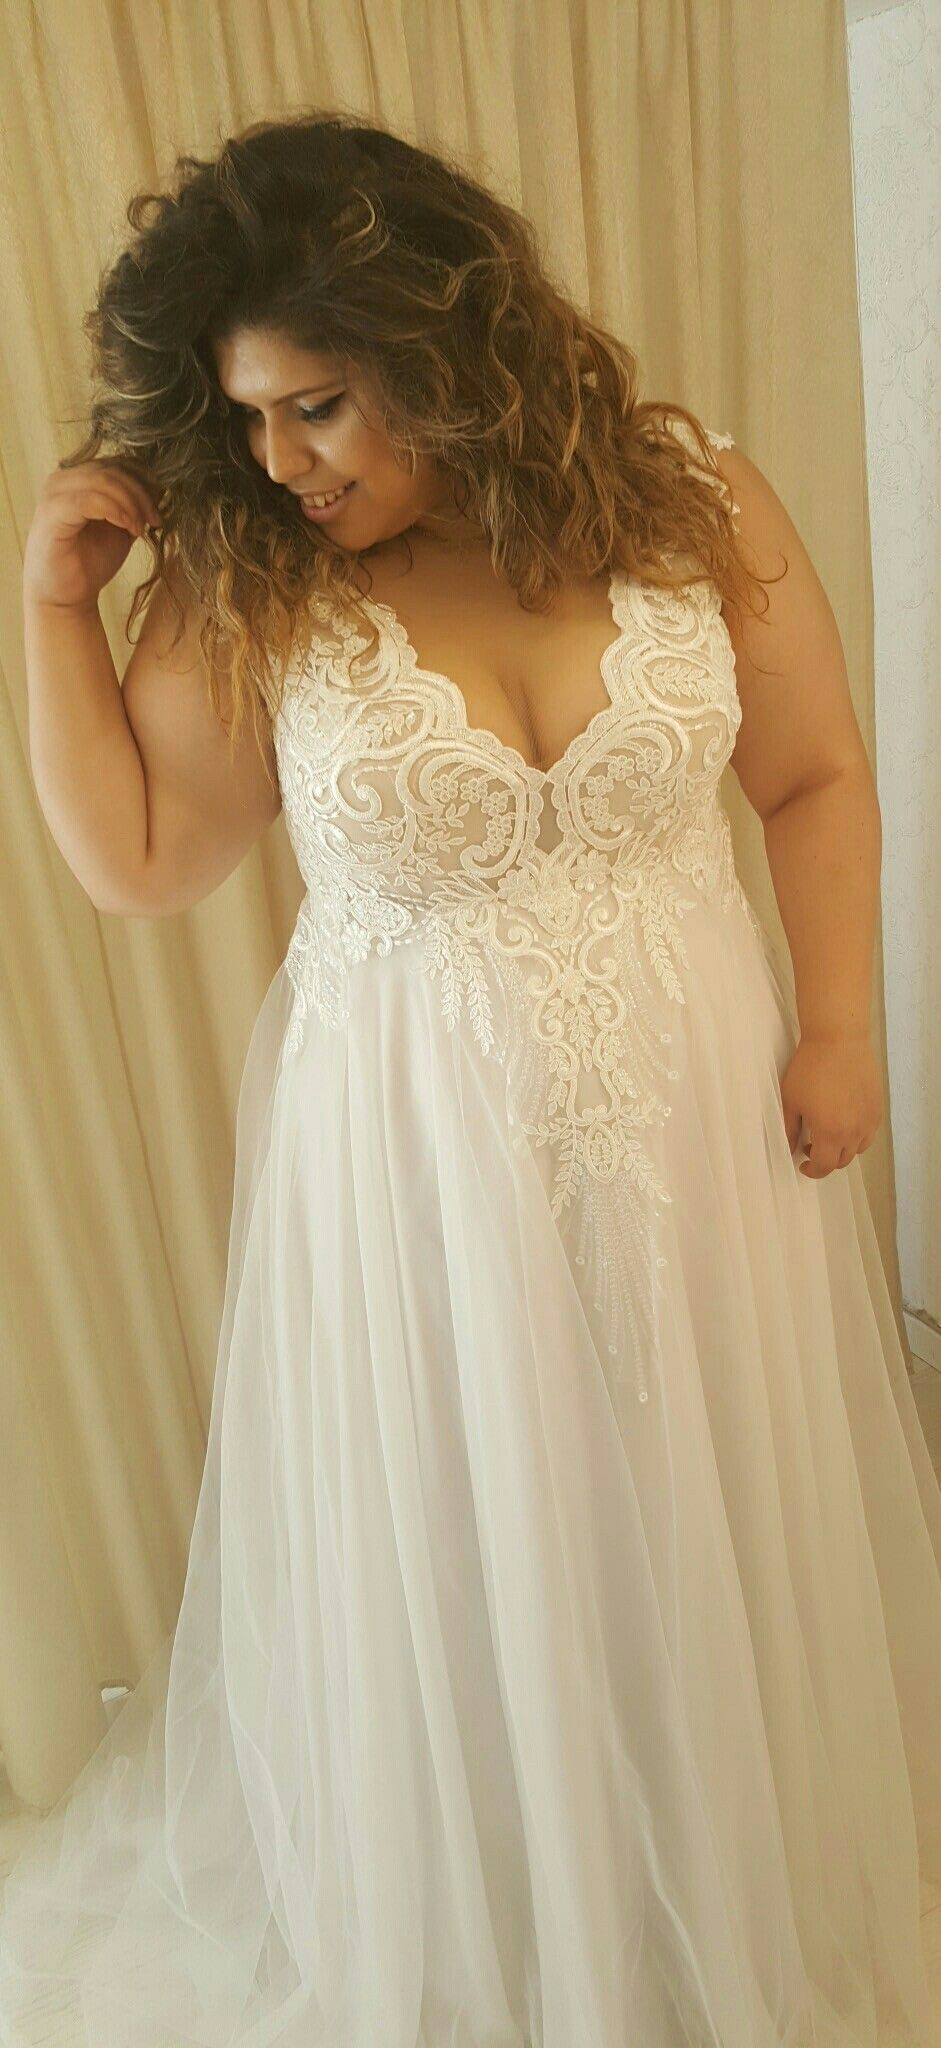 Plus Size Wedding Gown With Lace Top And Tulle Skirt Tracie Fittings Studio Levana Plus Size Wedding Gowns Plus Wedding Dresses Lace Applique Wedding Dress [ 2048 x 941 Pixel ]